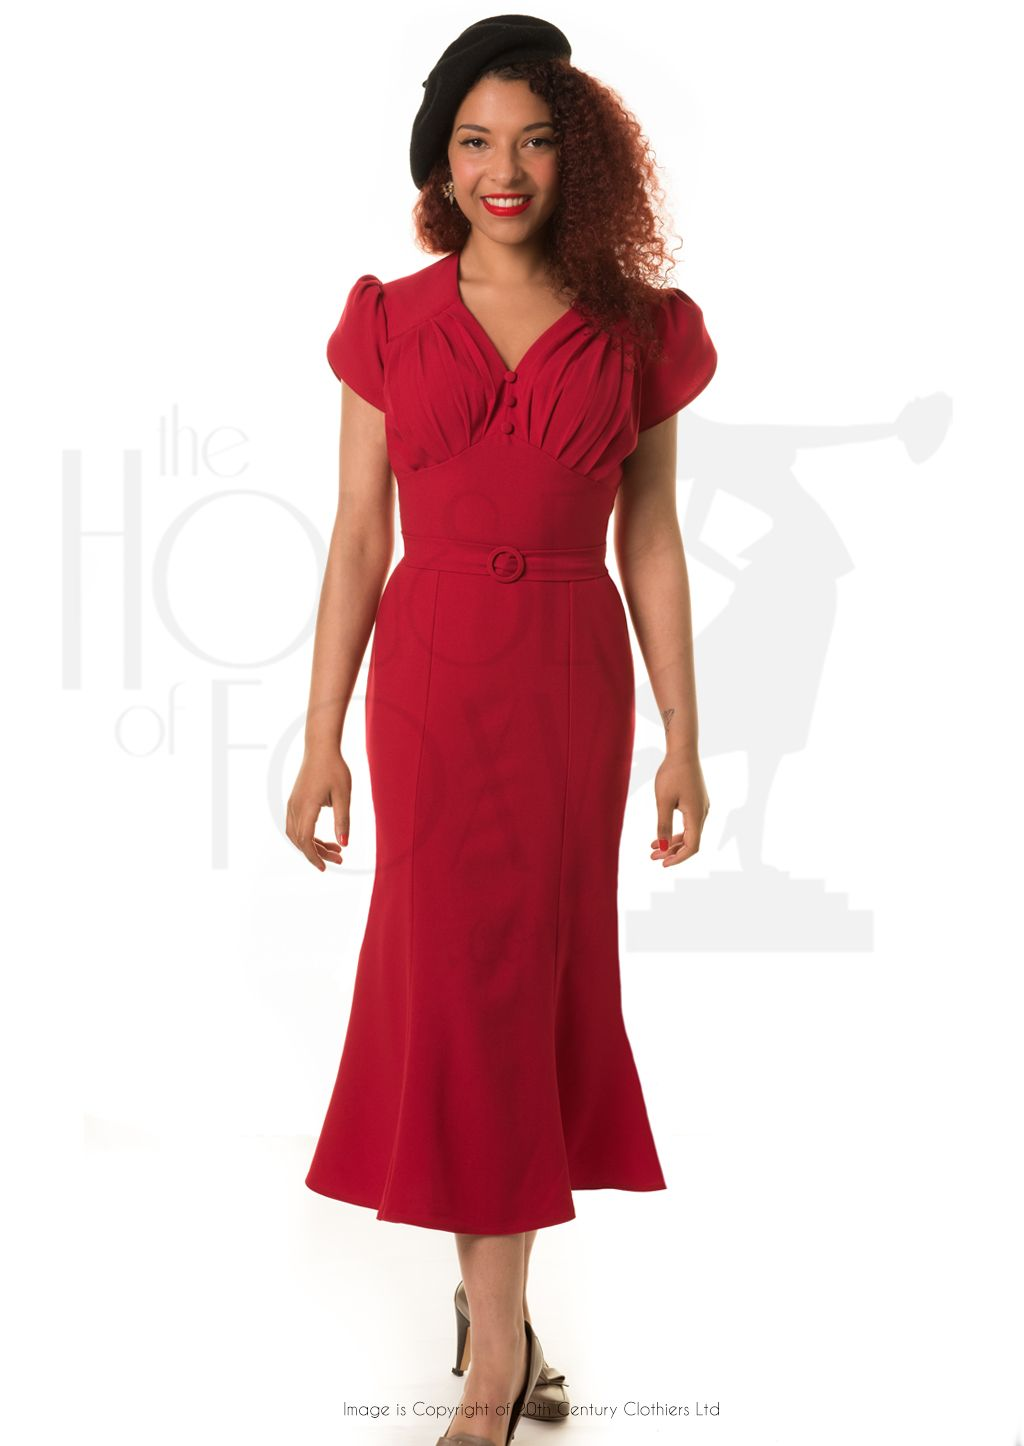 Retro Wiggle Dress In 1940s Style Red 1940s Fashion Vintage Style Dresses Dresses [ 1446 x 1024 Pixel ]